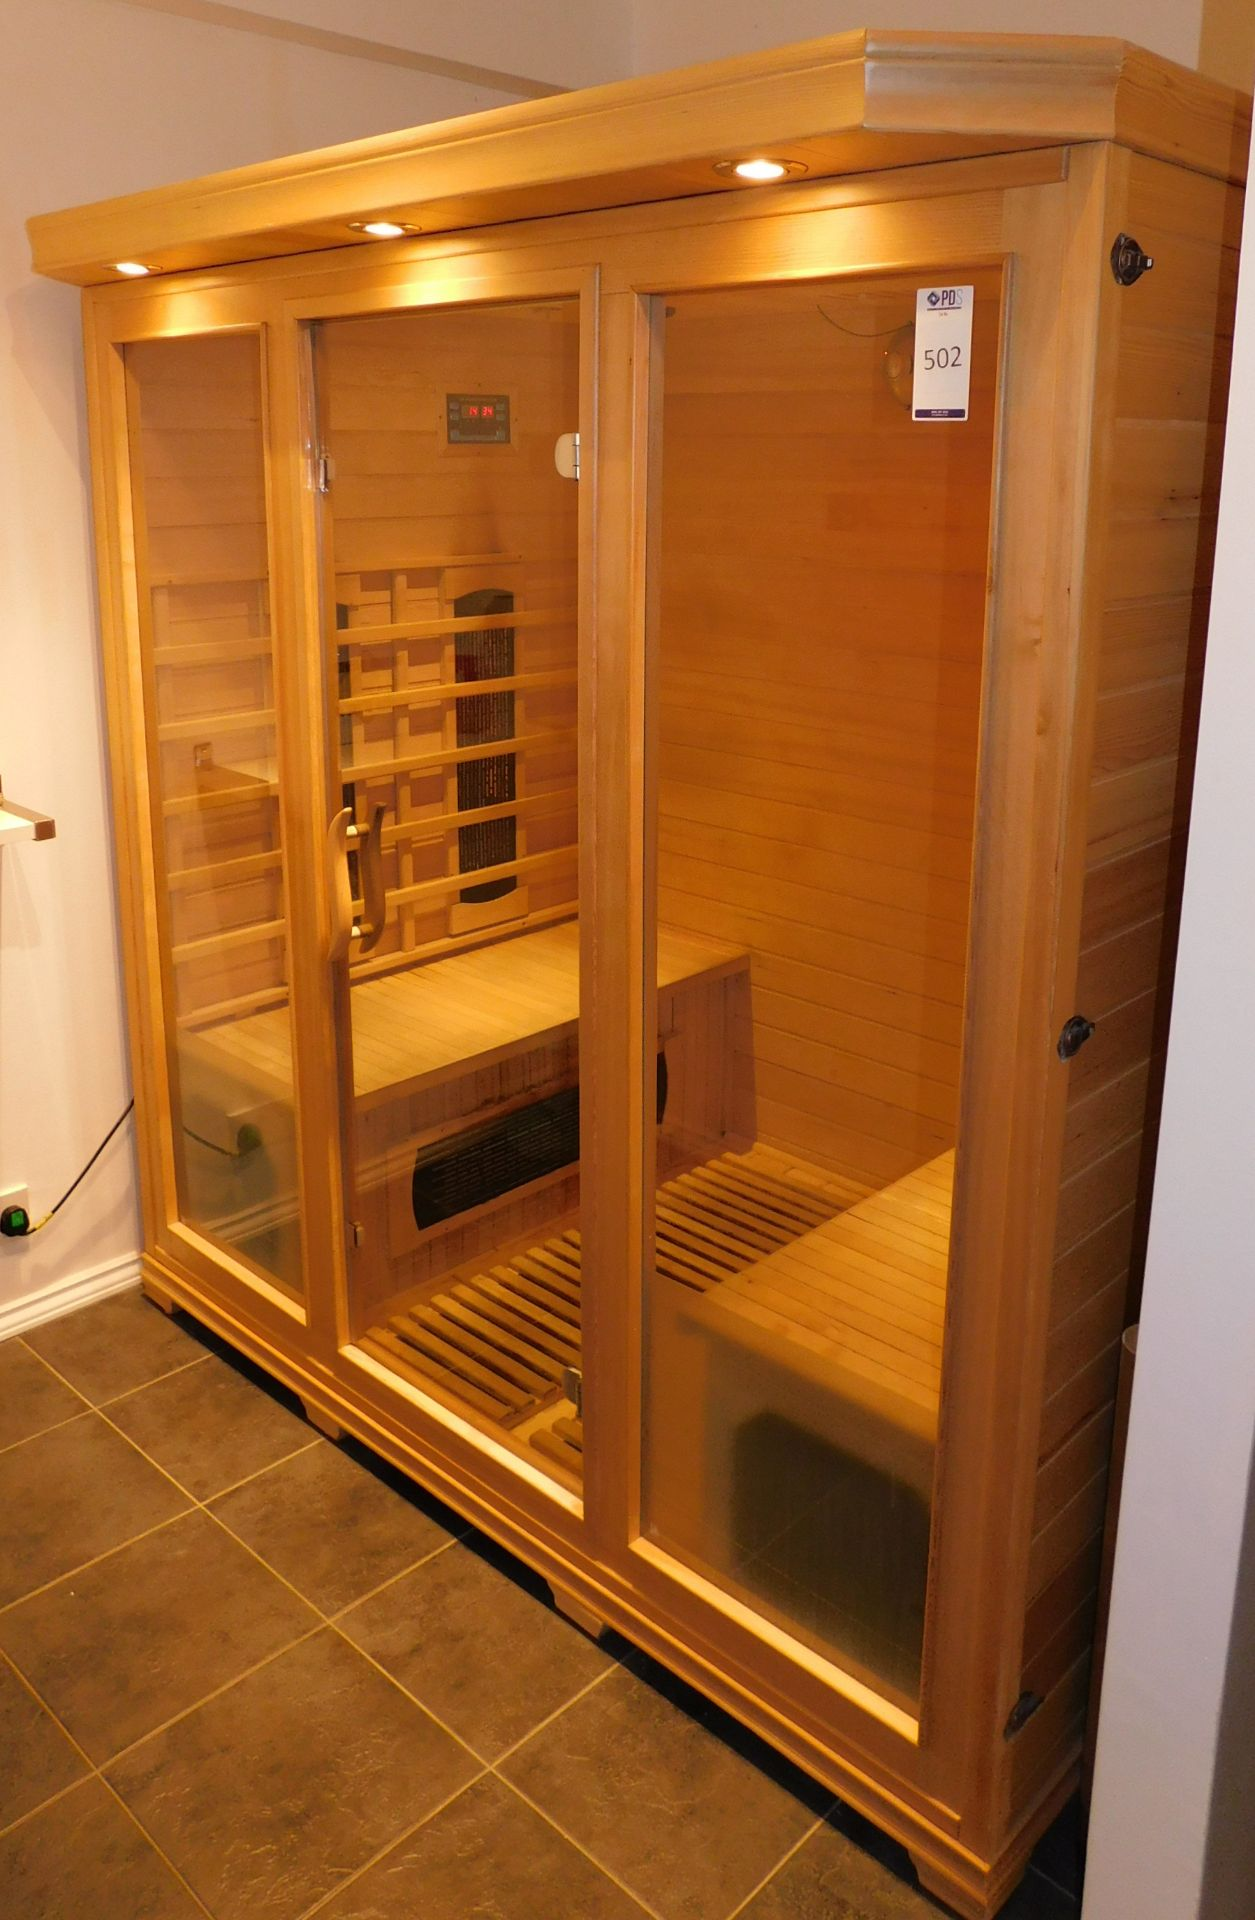 FAR Freestanding Infrared Sauna, W1.8m x H1.9m x D1.2m (Located Corby – See General Notes for - Image 2 of 7